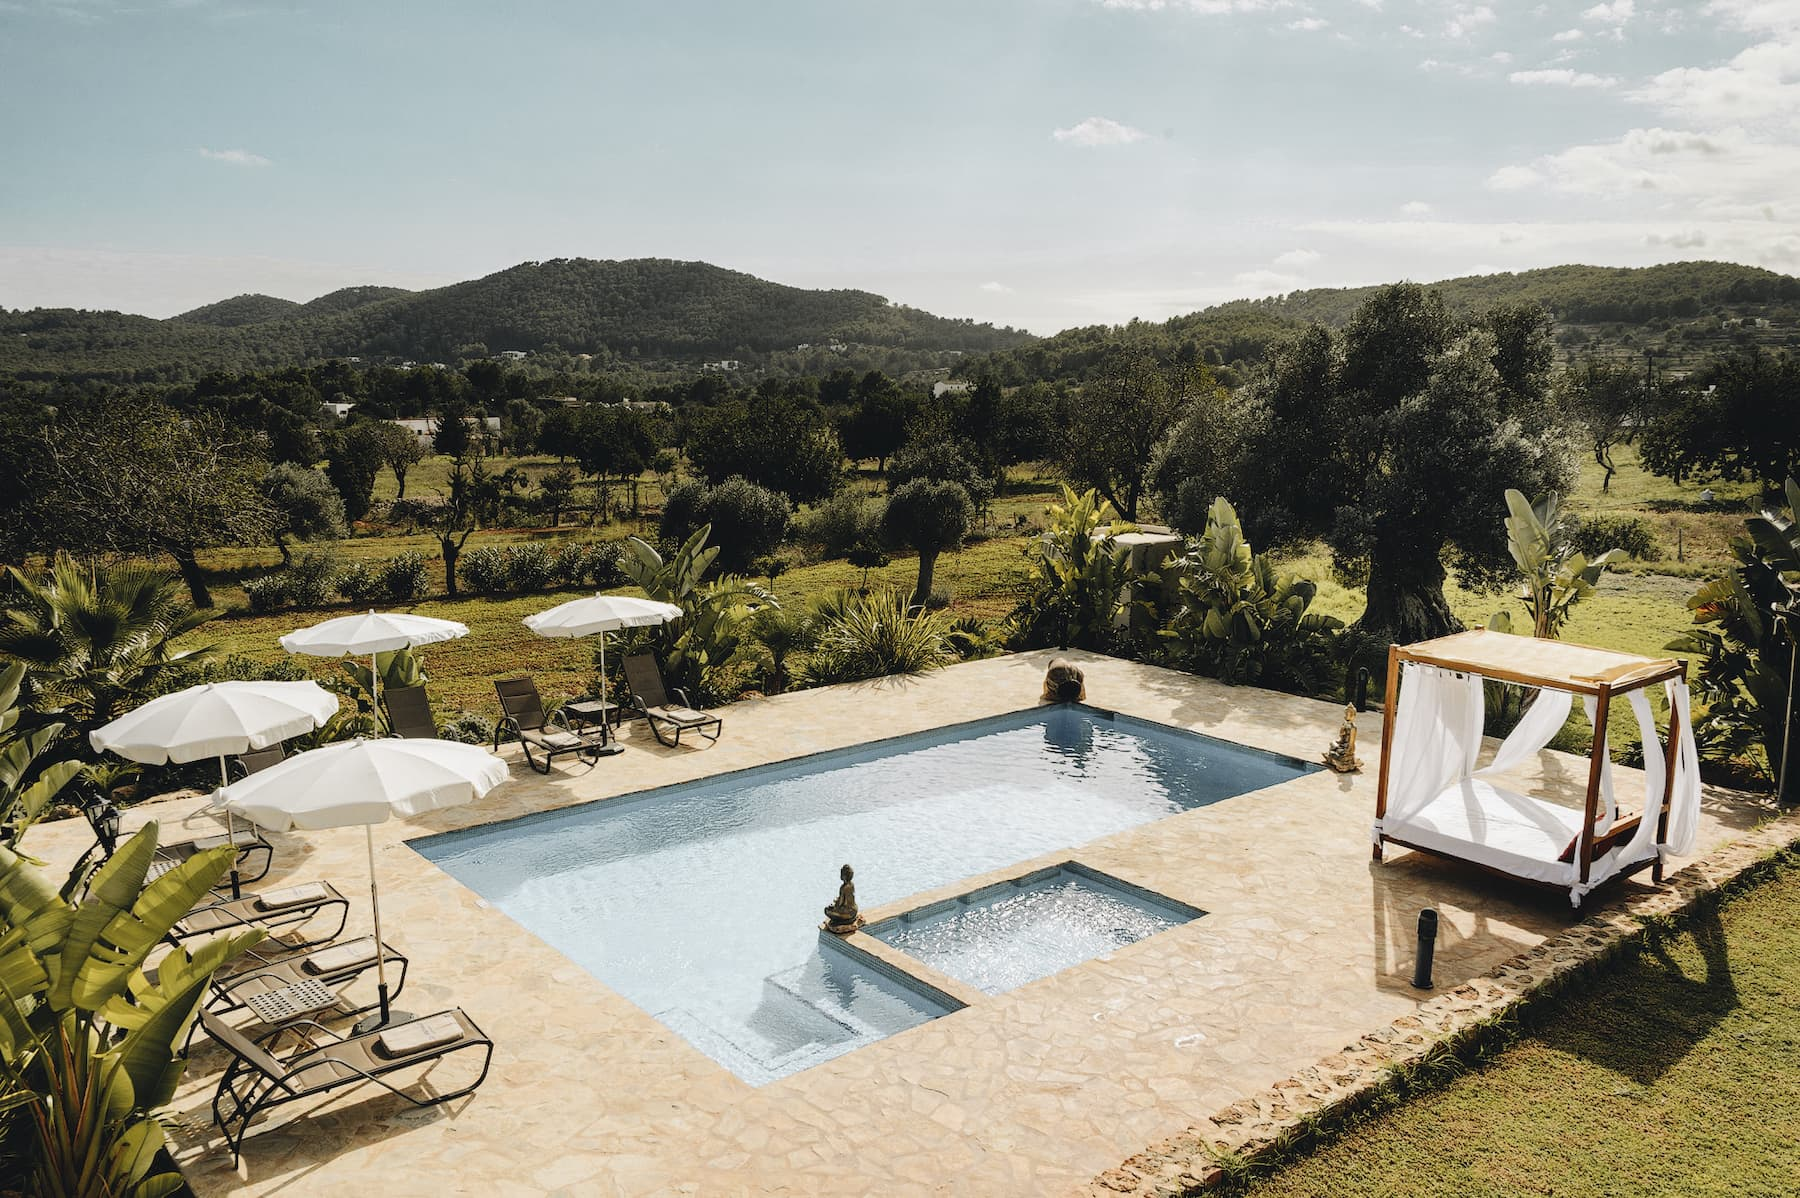 The Ibiza Yoga Finca Retreats